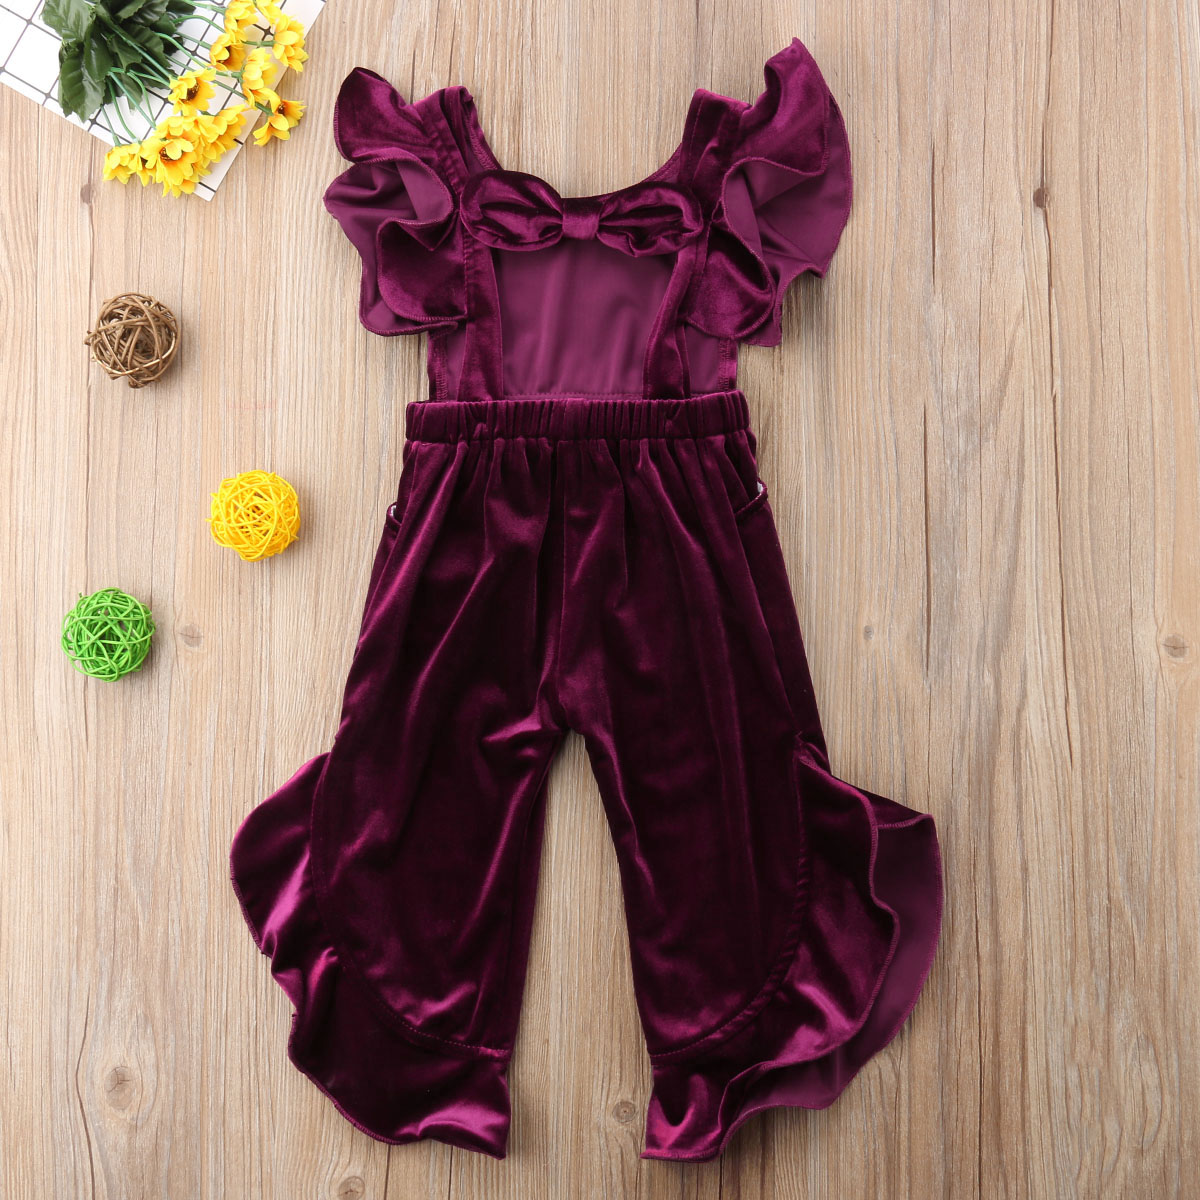 c8911e70c66 2018 Brand New Toddler Kid Baby Girl Clothes Korean velvet Romper Jumpsuit  Ruffled Sleeveless Sunsuit Solid Overall Outfits 1 6T-in Overalls from  Mother ...